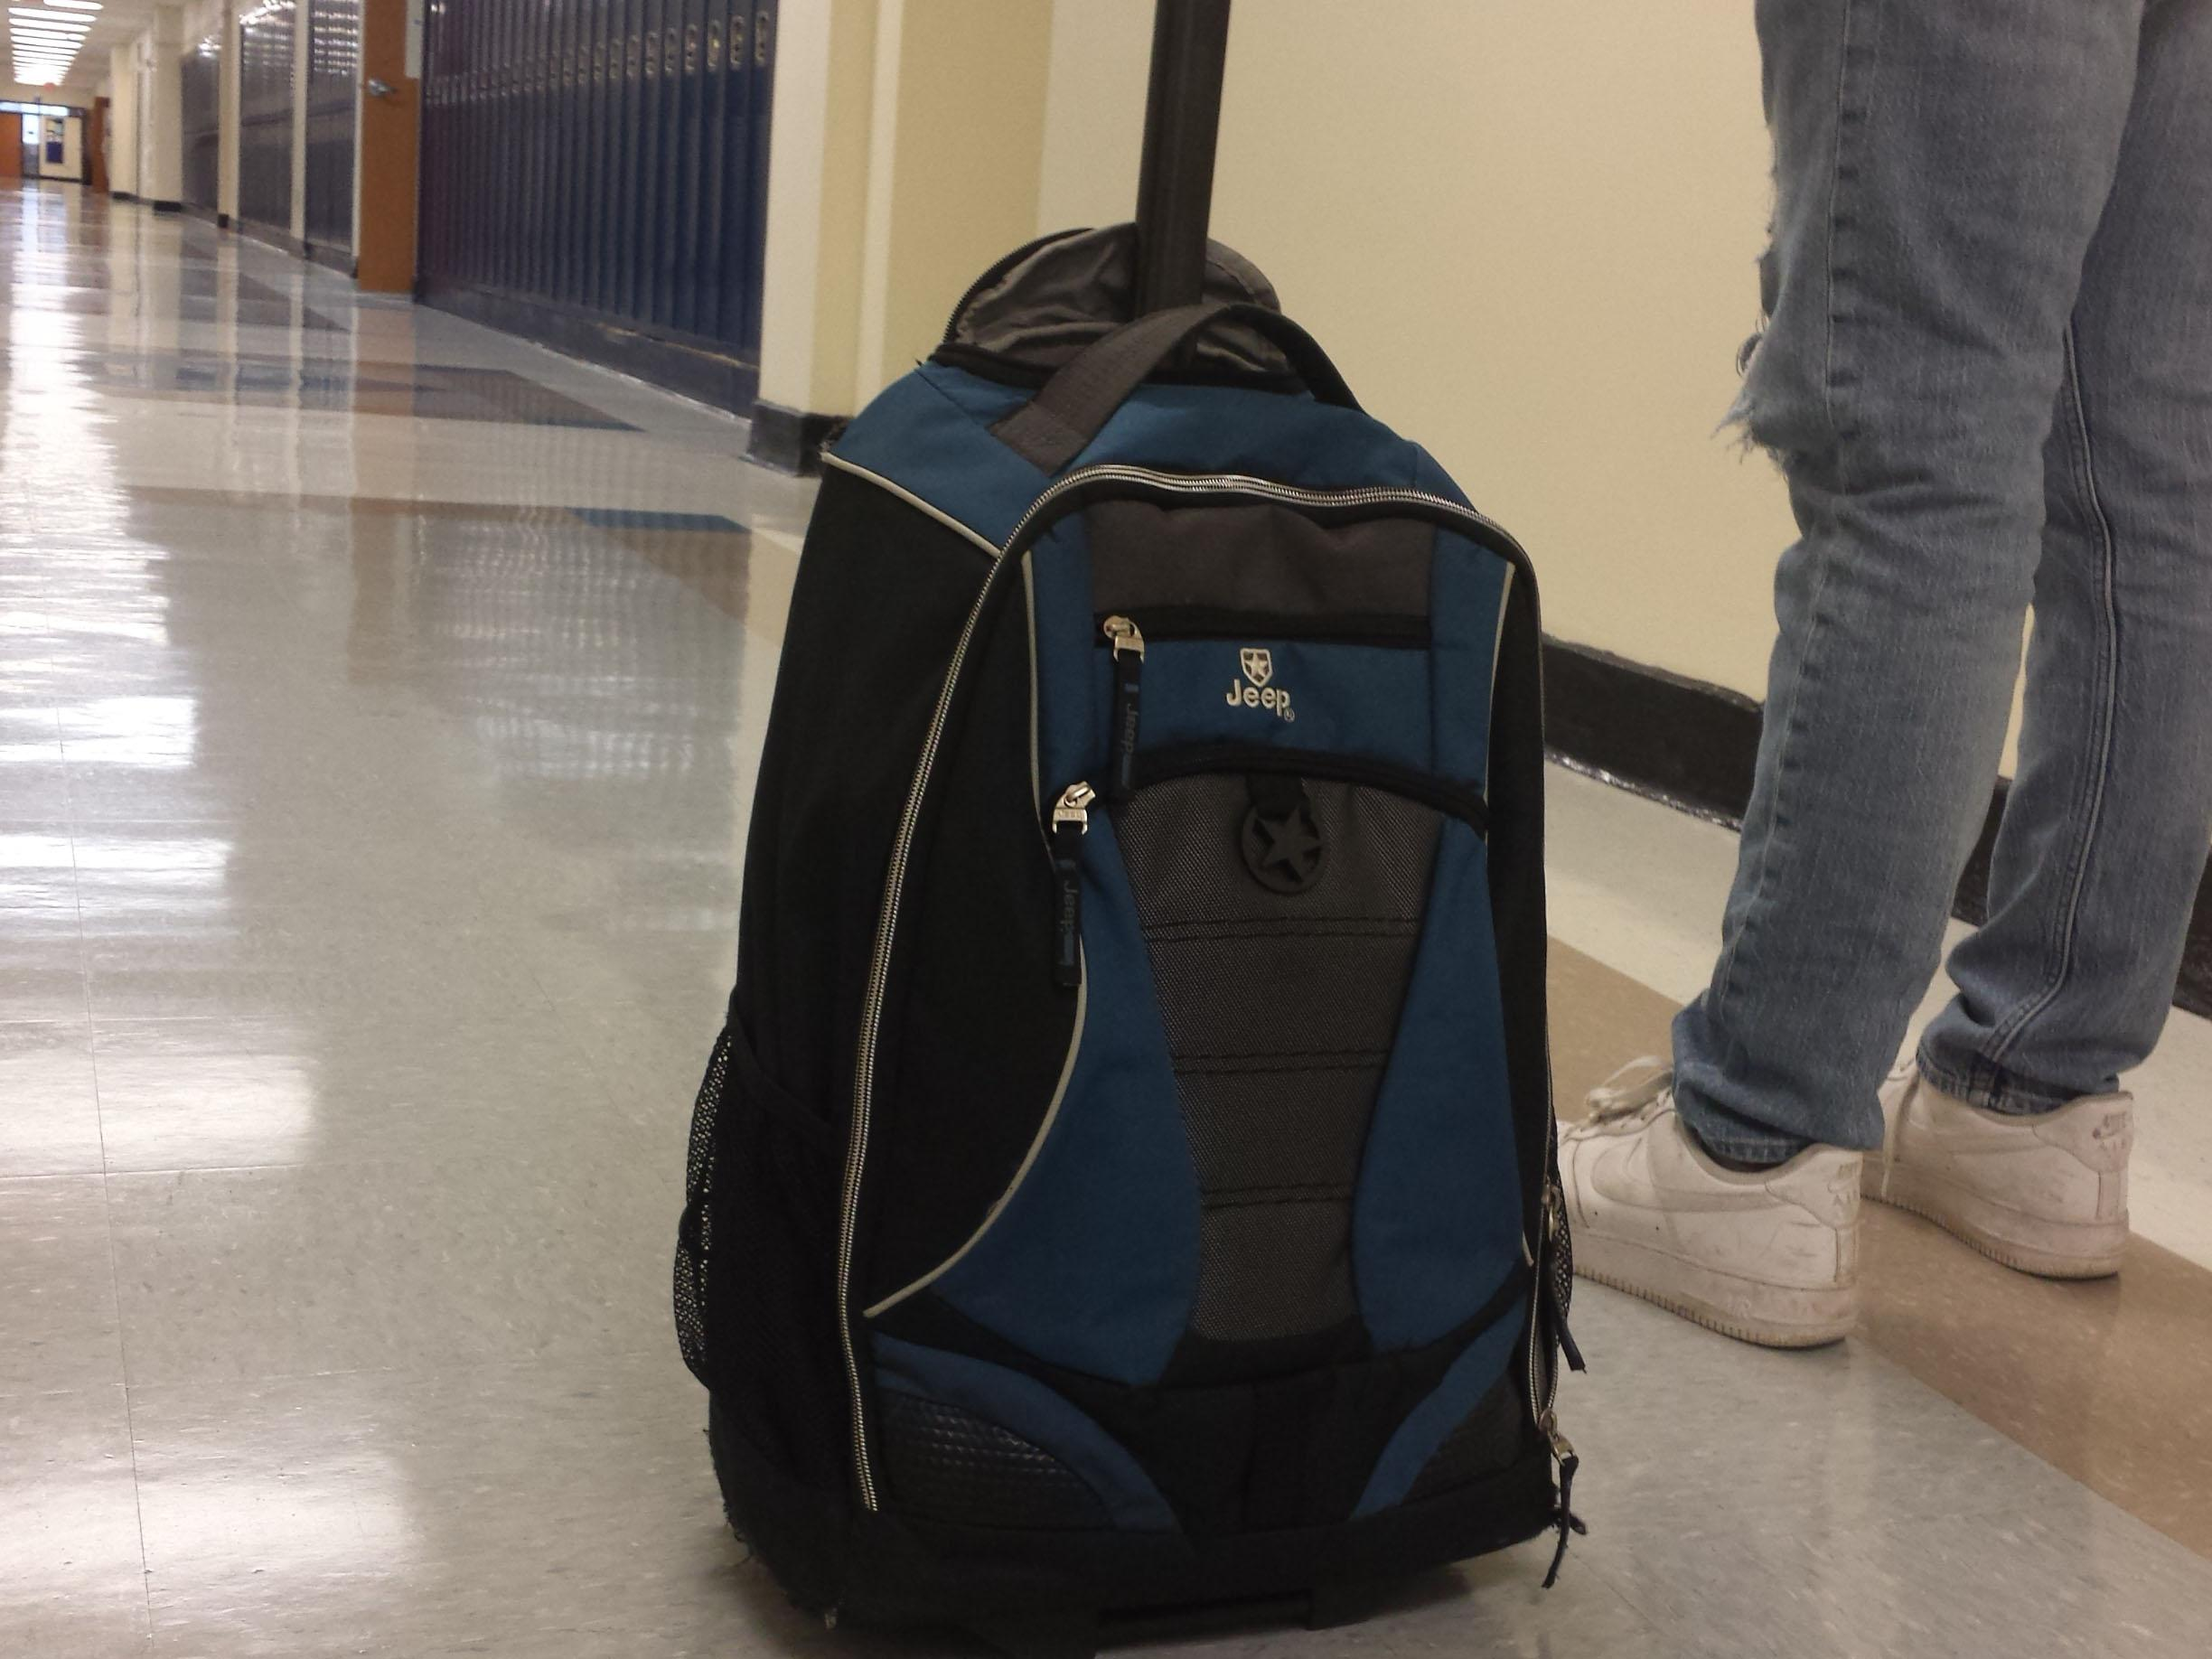 The roller backpack